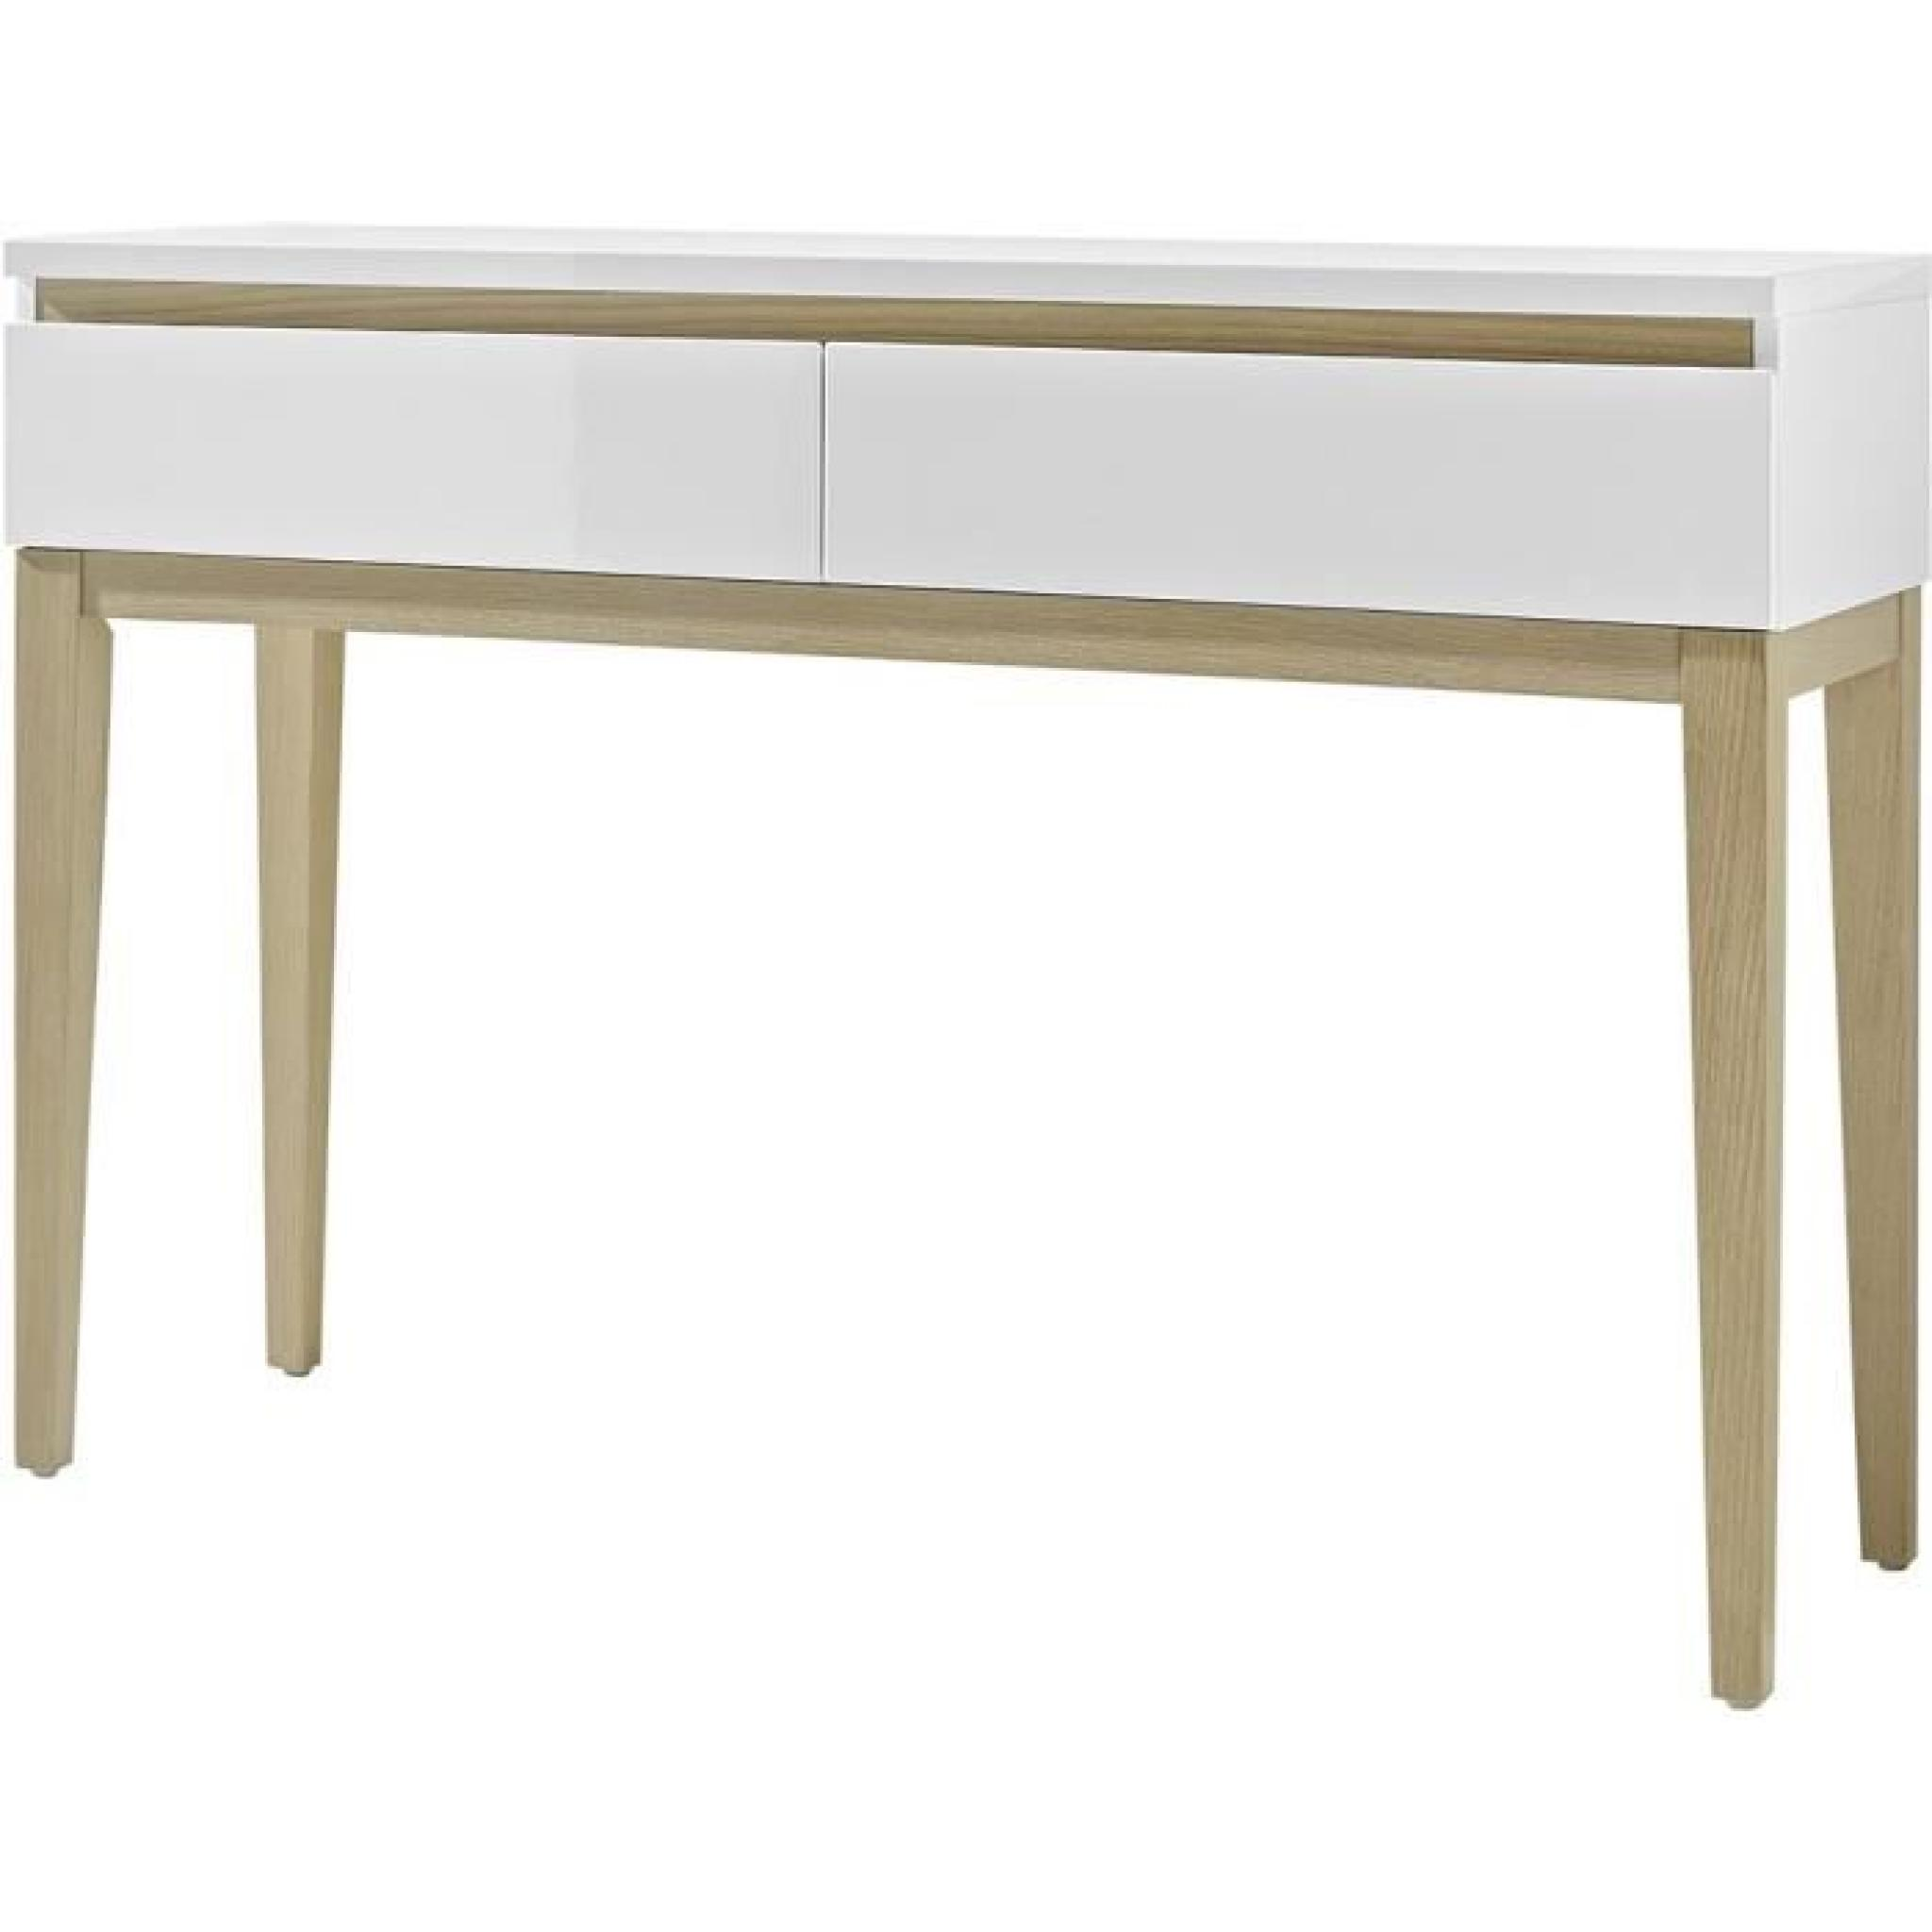 console laque beautiful table console blanche console. Black Bedroom Furniture Sets. Home Design Ideas